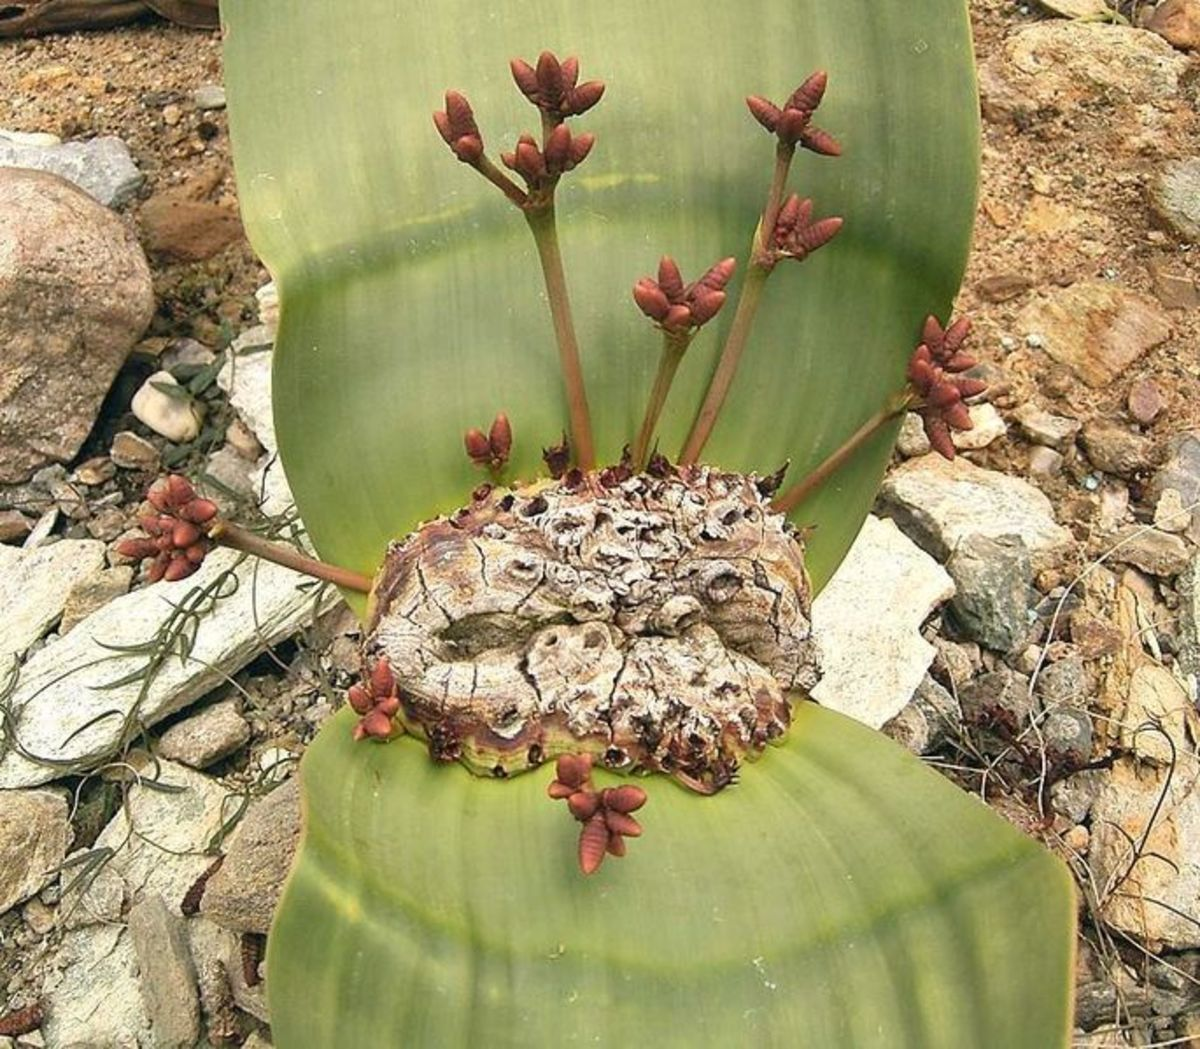 Cones of a Welwitschia mirabilis male plant.